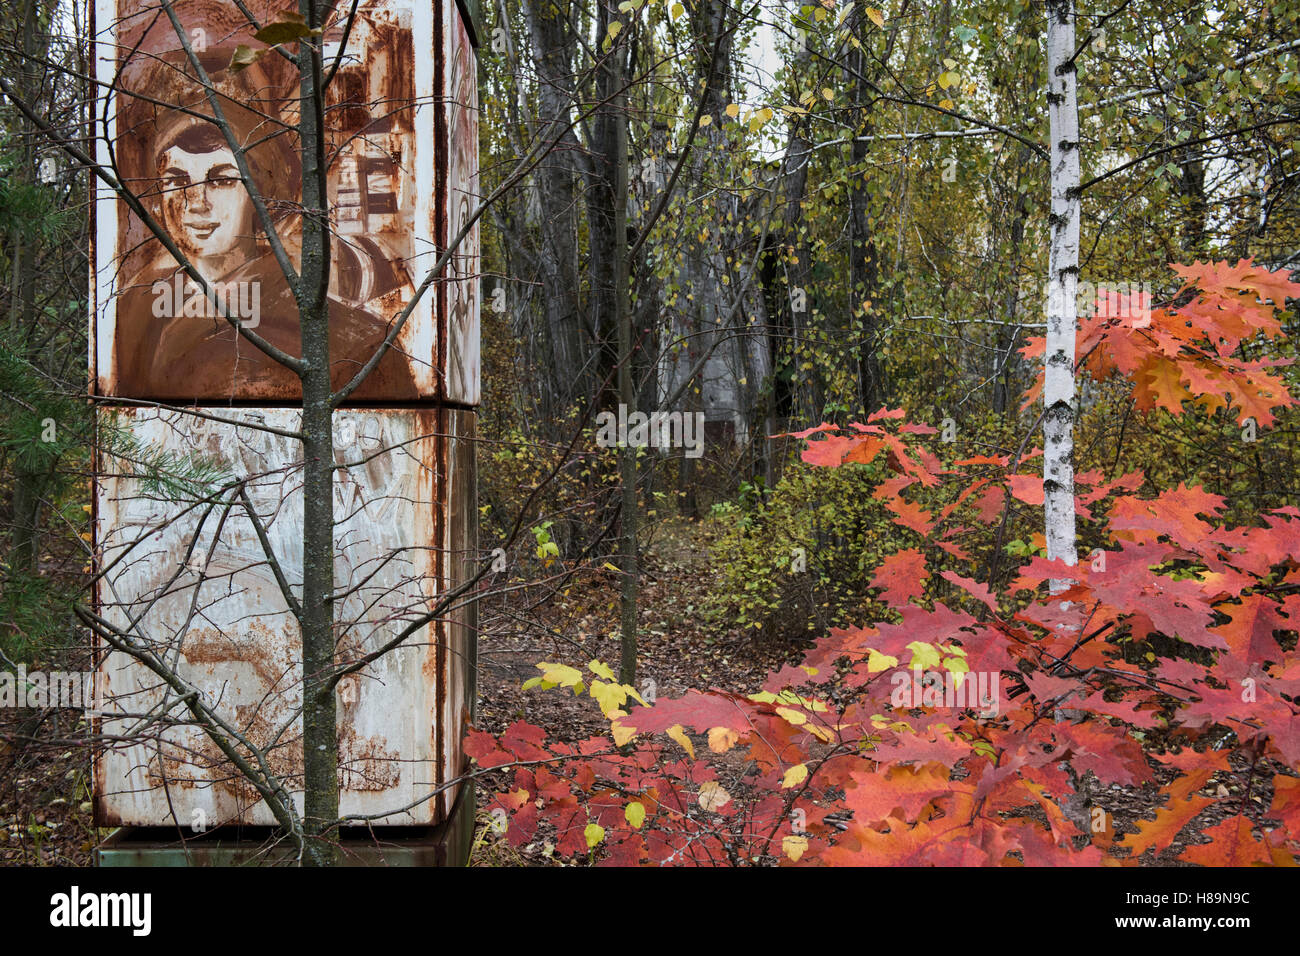 A leftover advertising pillar from the Soviets amid the abandoned, overgrown city of Pripyat. Chernobyl Exclusion - Stock Image